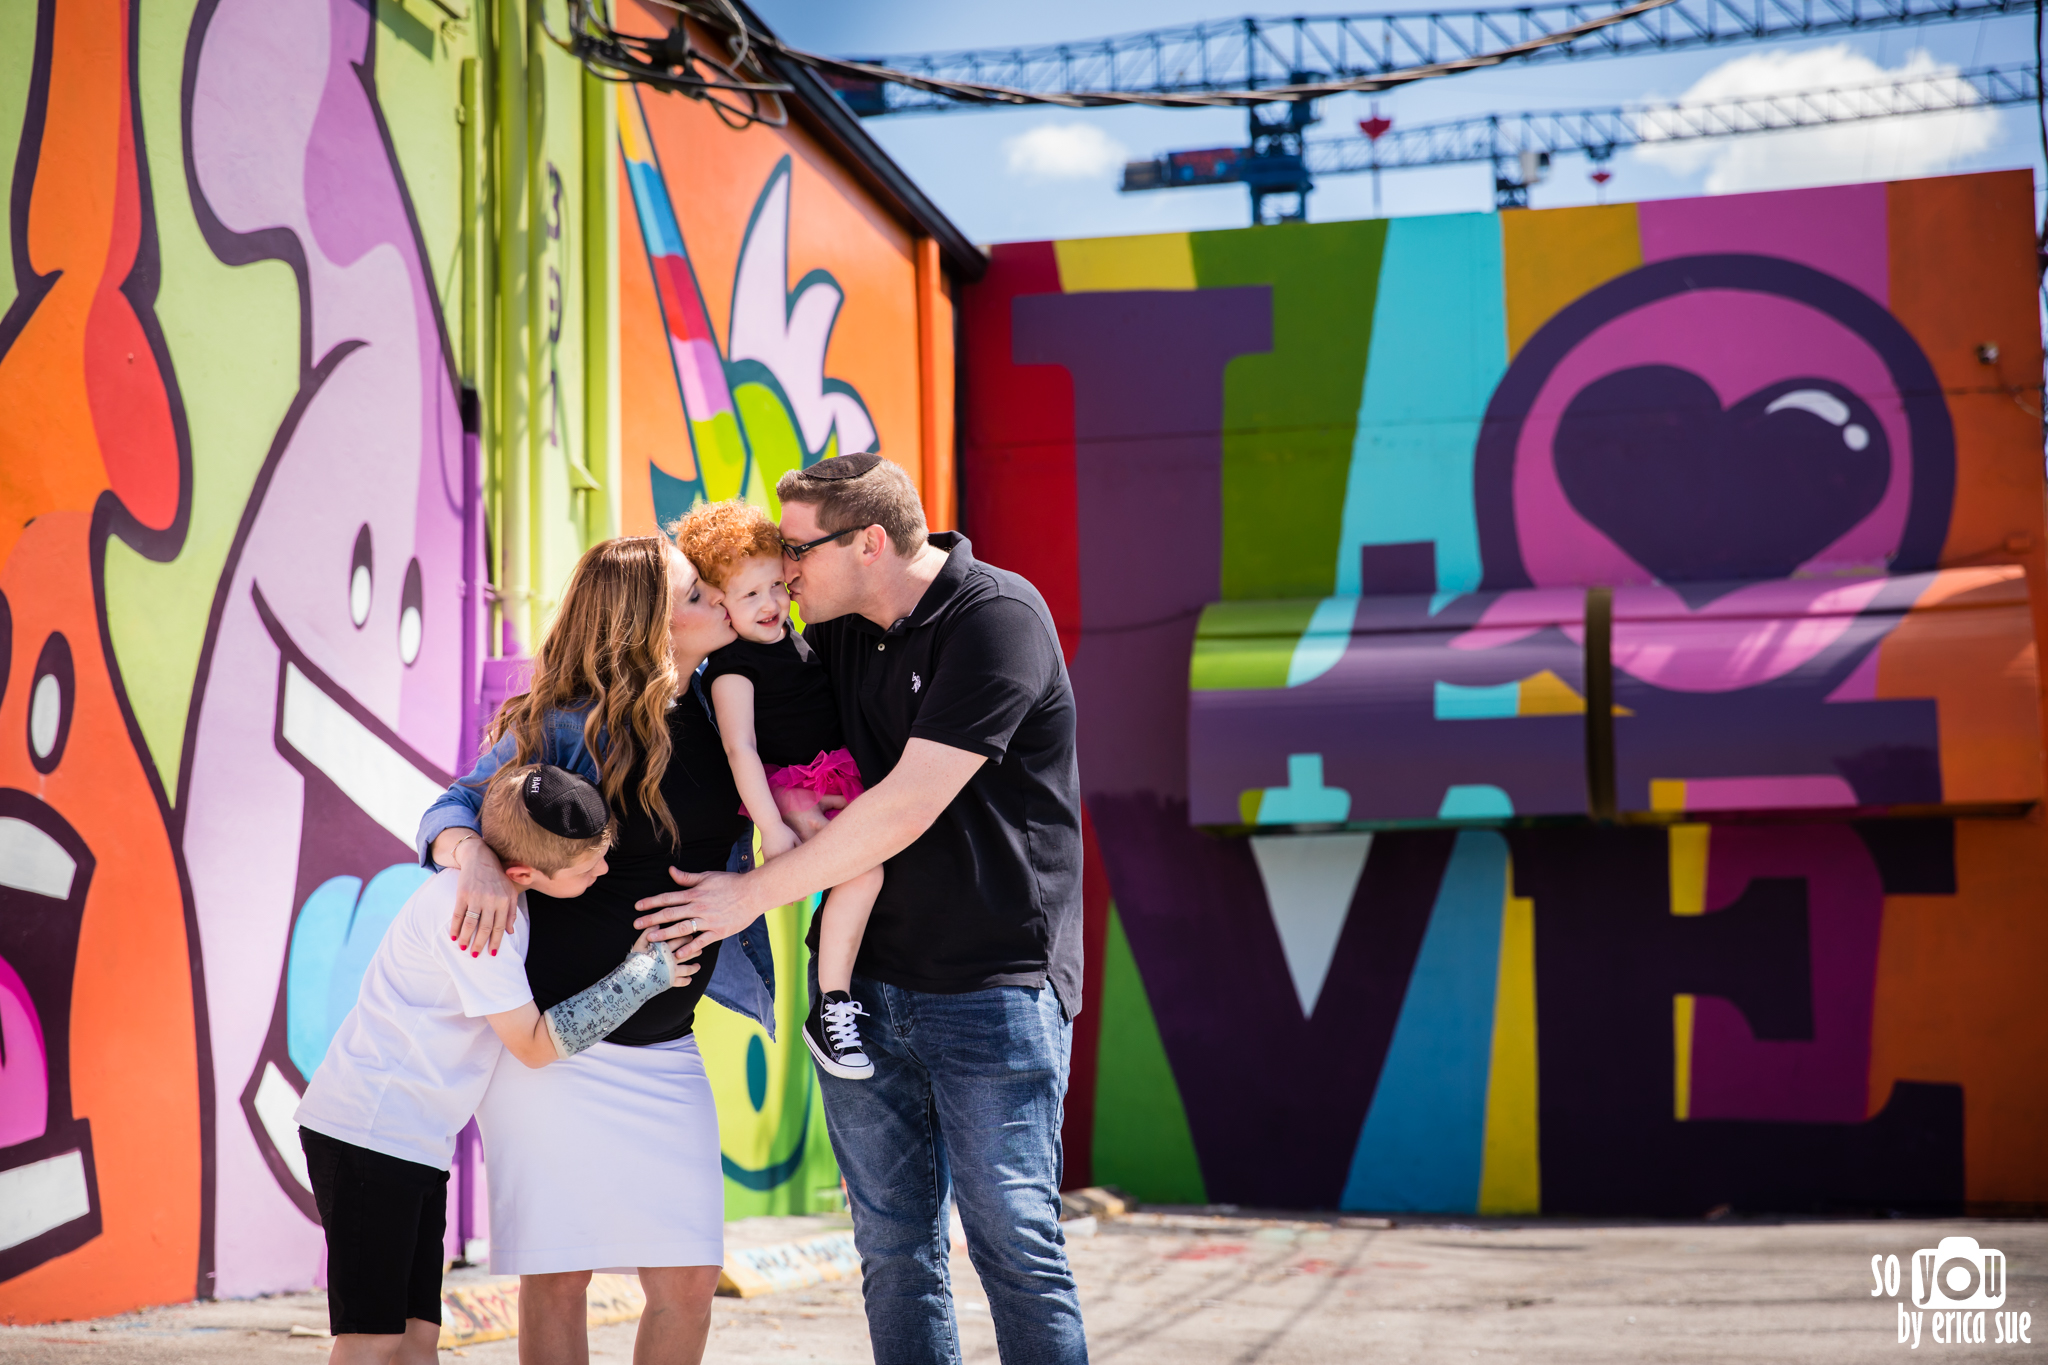 wynwood-family-photography-so-you-by-erica-sue-ft-lauderdale-davie-miami-fl-florida-2853.jpg